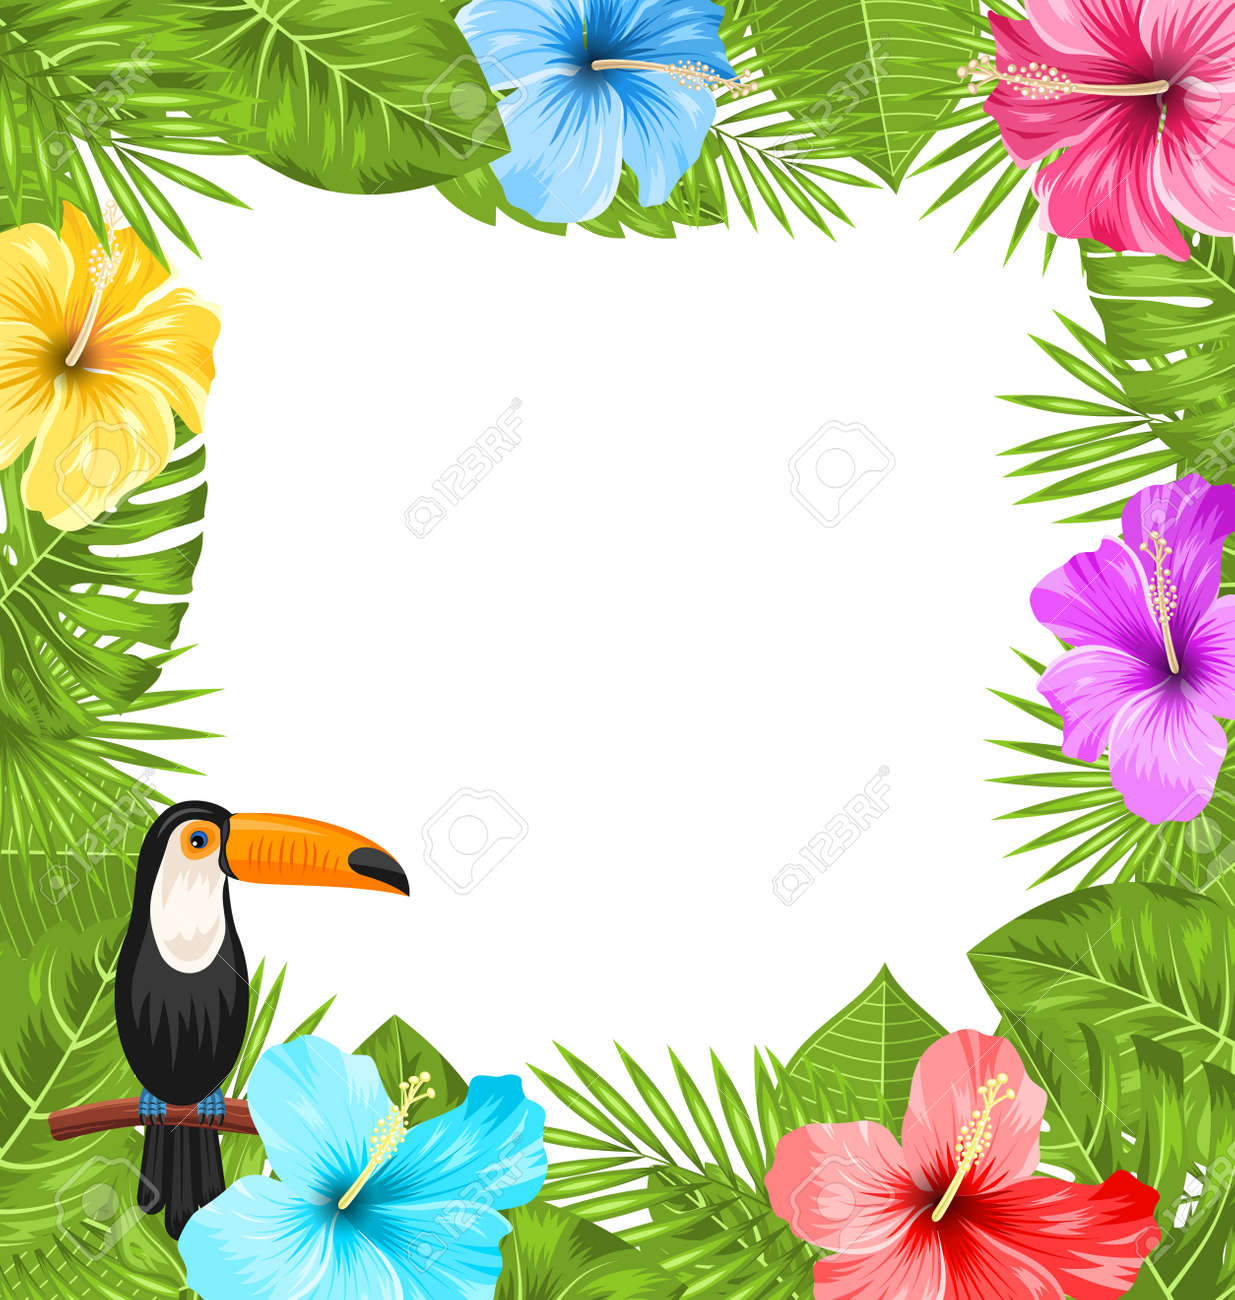 Illustration Exotic Jungle Frame with Toucan Bird, Colorful Hibiscus Flowers Blossom and Tropical Leaves, Copy Space for Your Text - Vector - 57654918